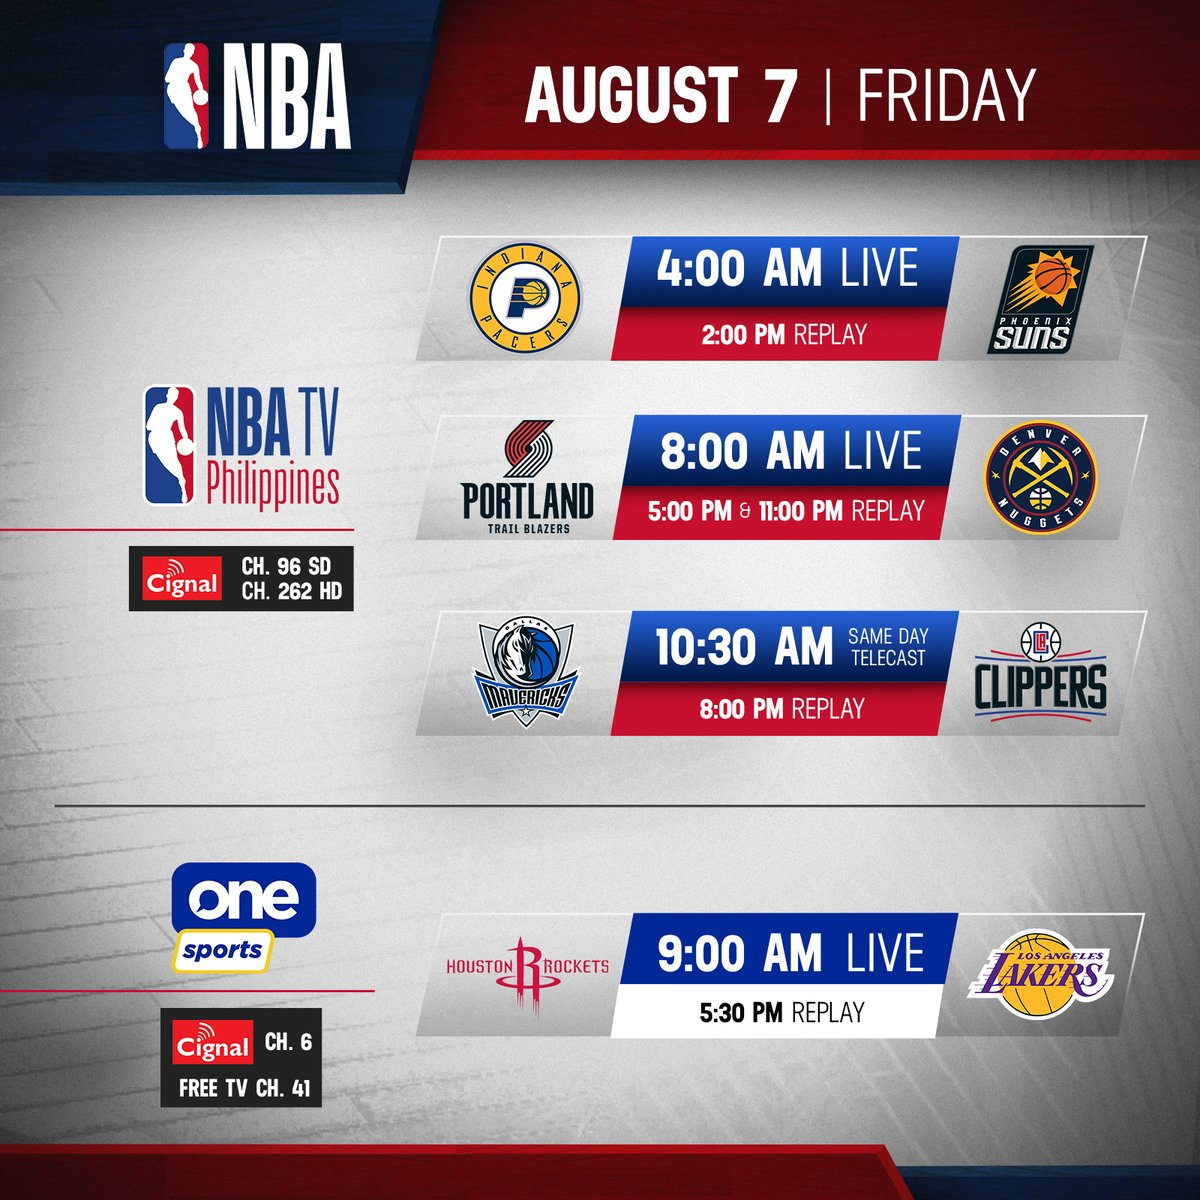 Check out tomorrow's NBA lineup:  NBA TV Philippines Pacers vs Suns @ 4:00AM LIVE Trail Blazers vs Nuggets @ 8:00AM LIVE Mavericks vs Clippers @ 10:30AM LIVE  One Sports Rockets vs Lakers @ 9:00AM LIVE  #StaySafeStayAwesome  #LiveAwesome  #WholeNewGame  #NBAonCignal https://t.co/PjFIW89Ivg